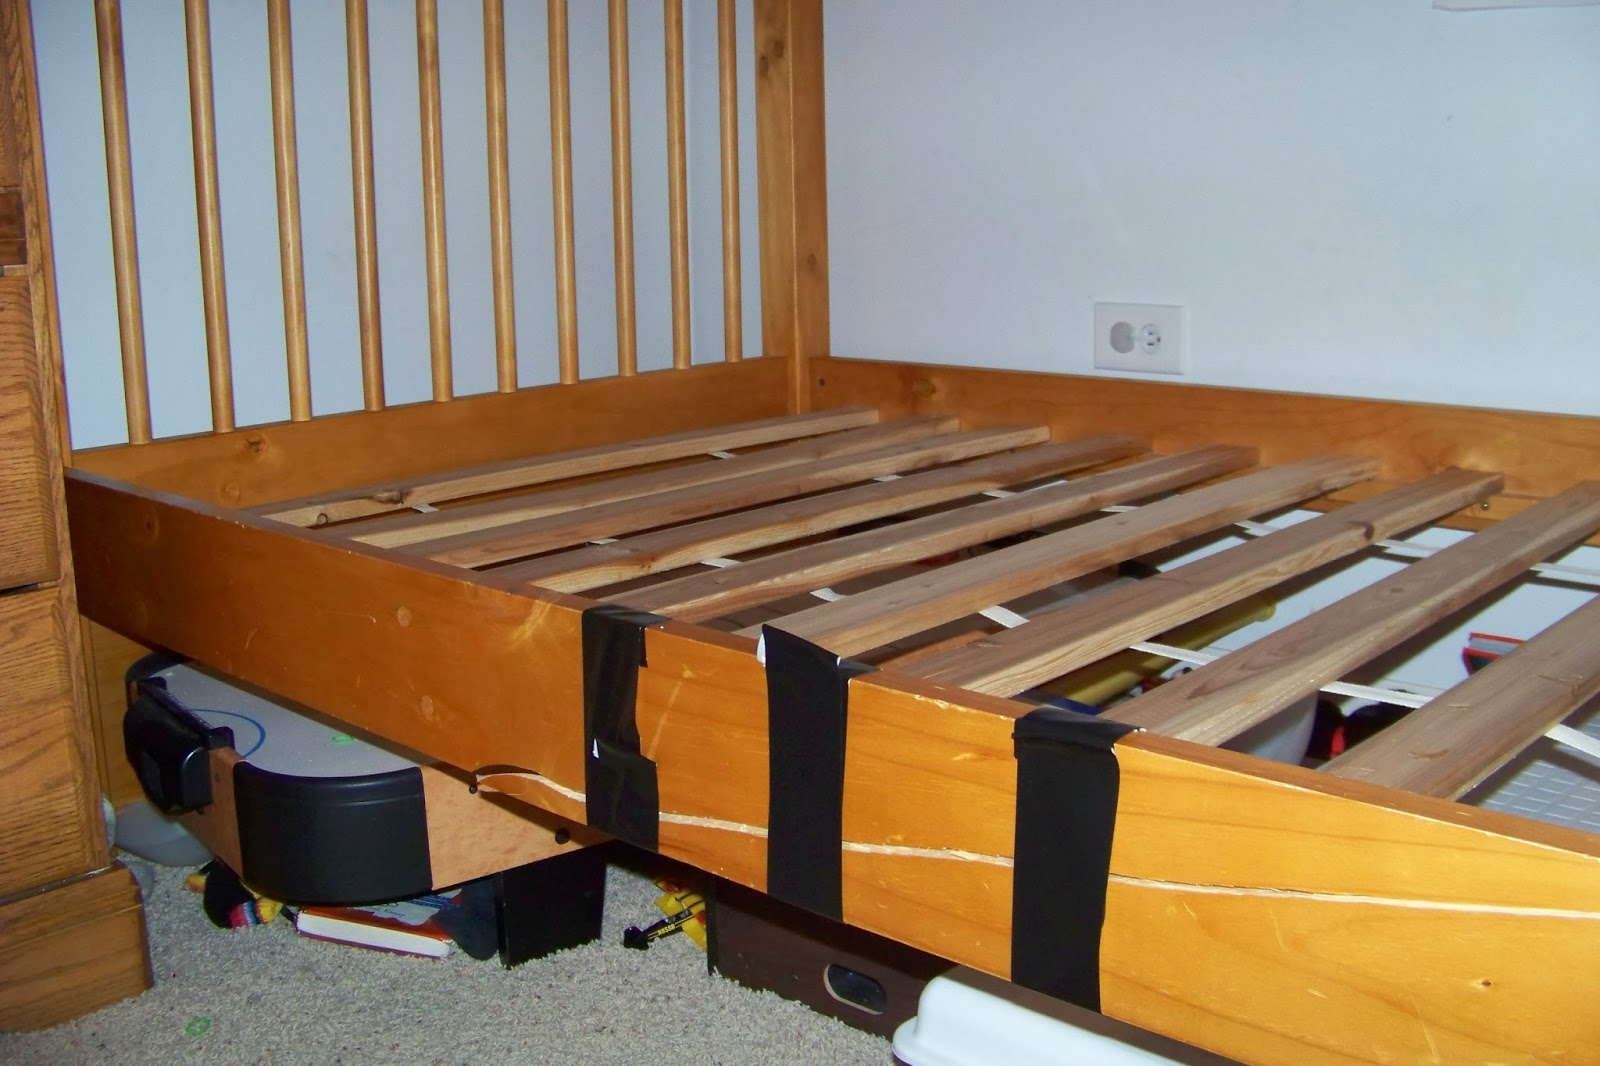 We Band of Mothers: The Broken Bed